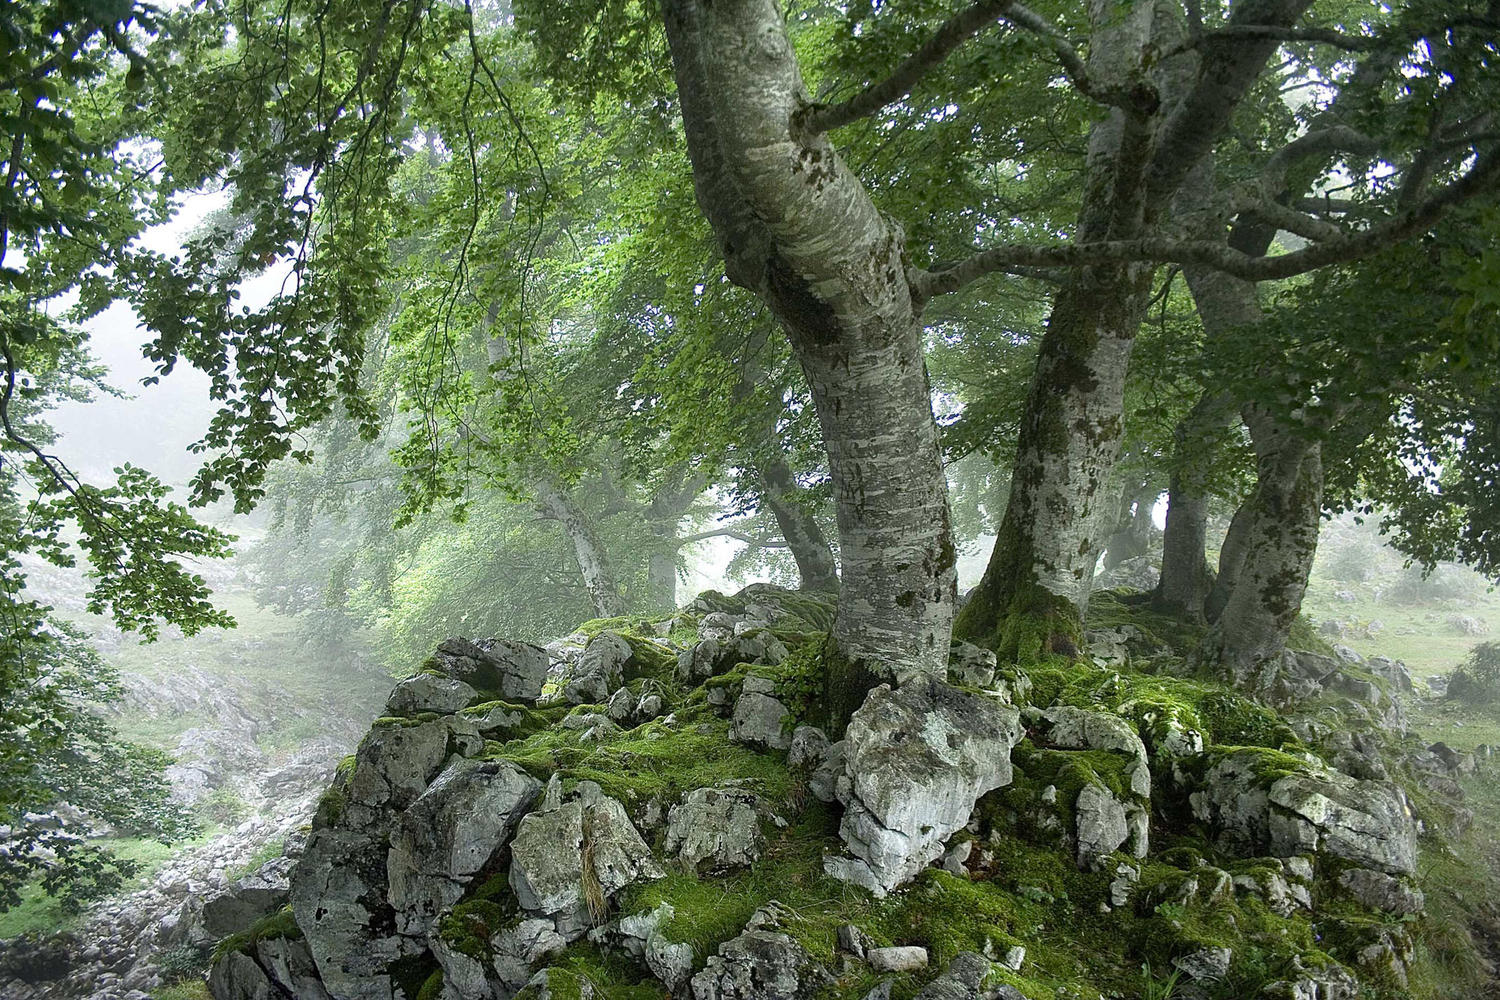 Magical forests in the mist.